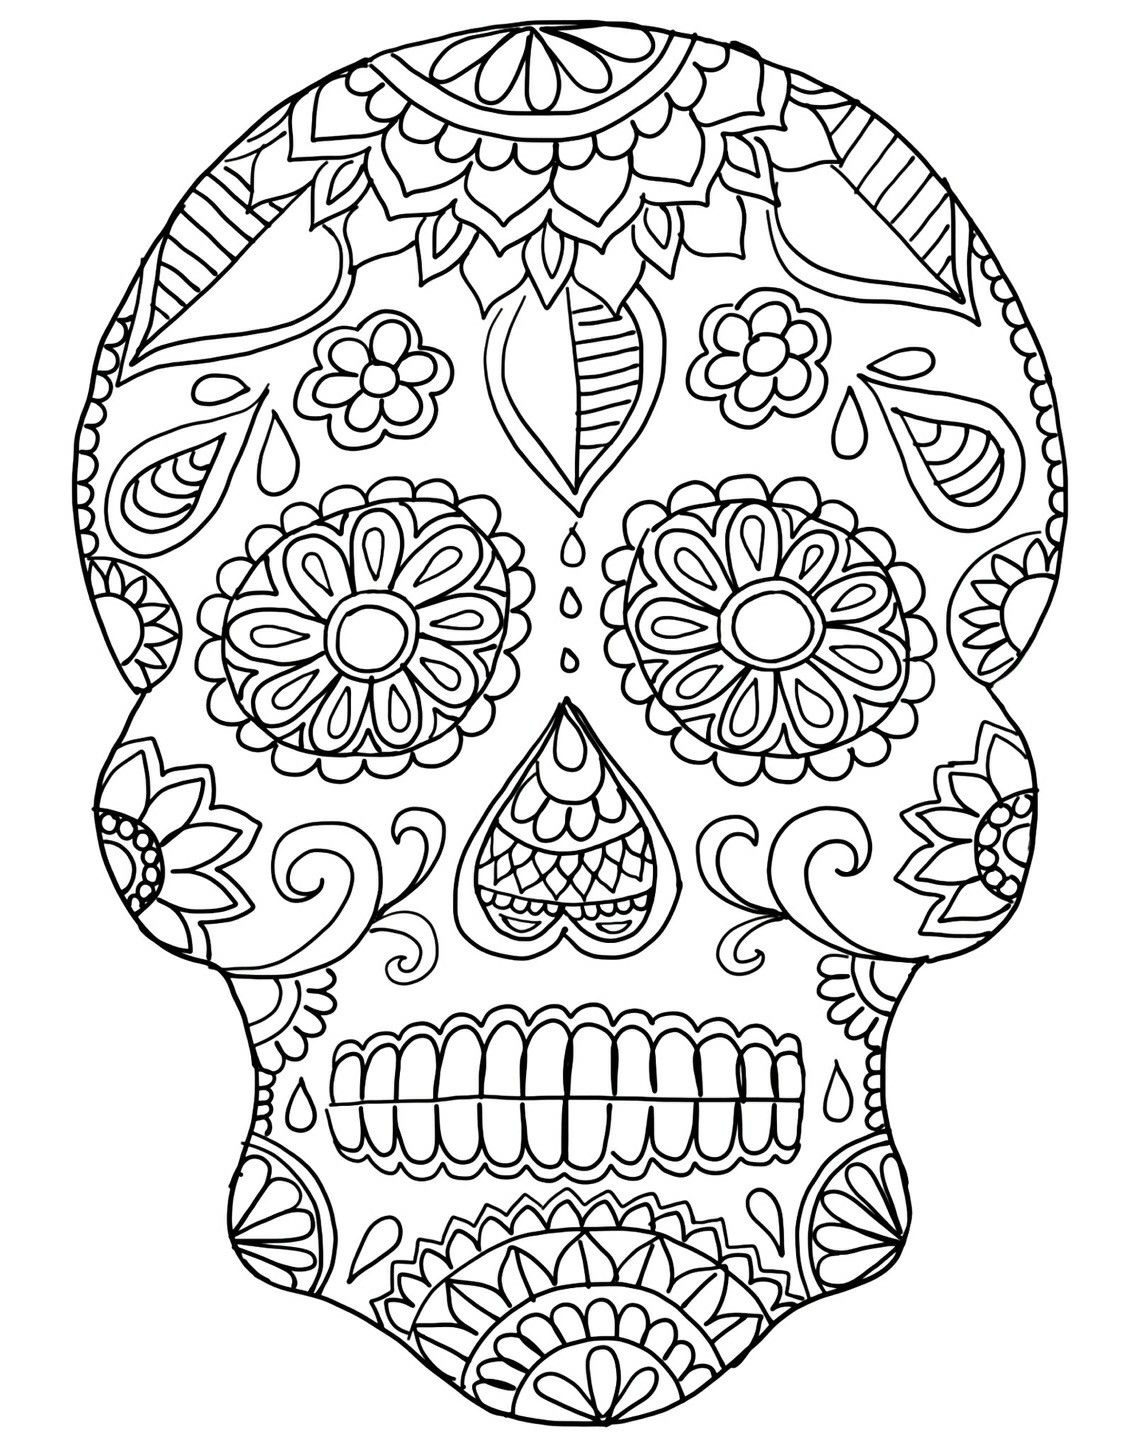 skull mandala coloring pages the snug is now a part of skull coloring pages adult coloring skull mandala pages